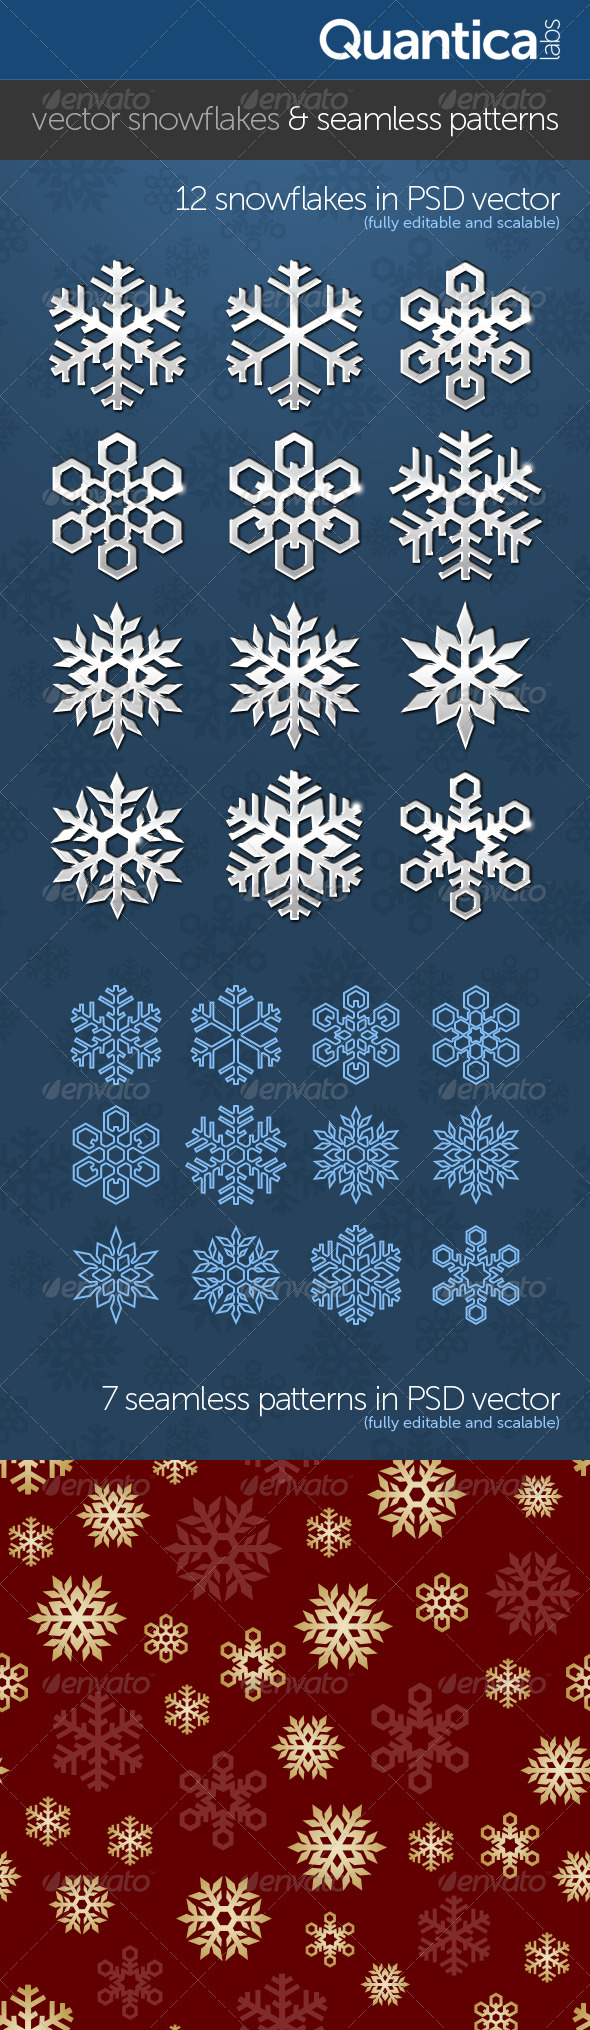 Vector Snowflakes With Seamless Patterns - Decorative Graphics